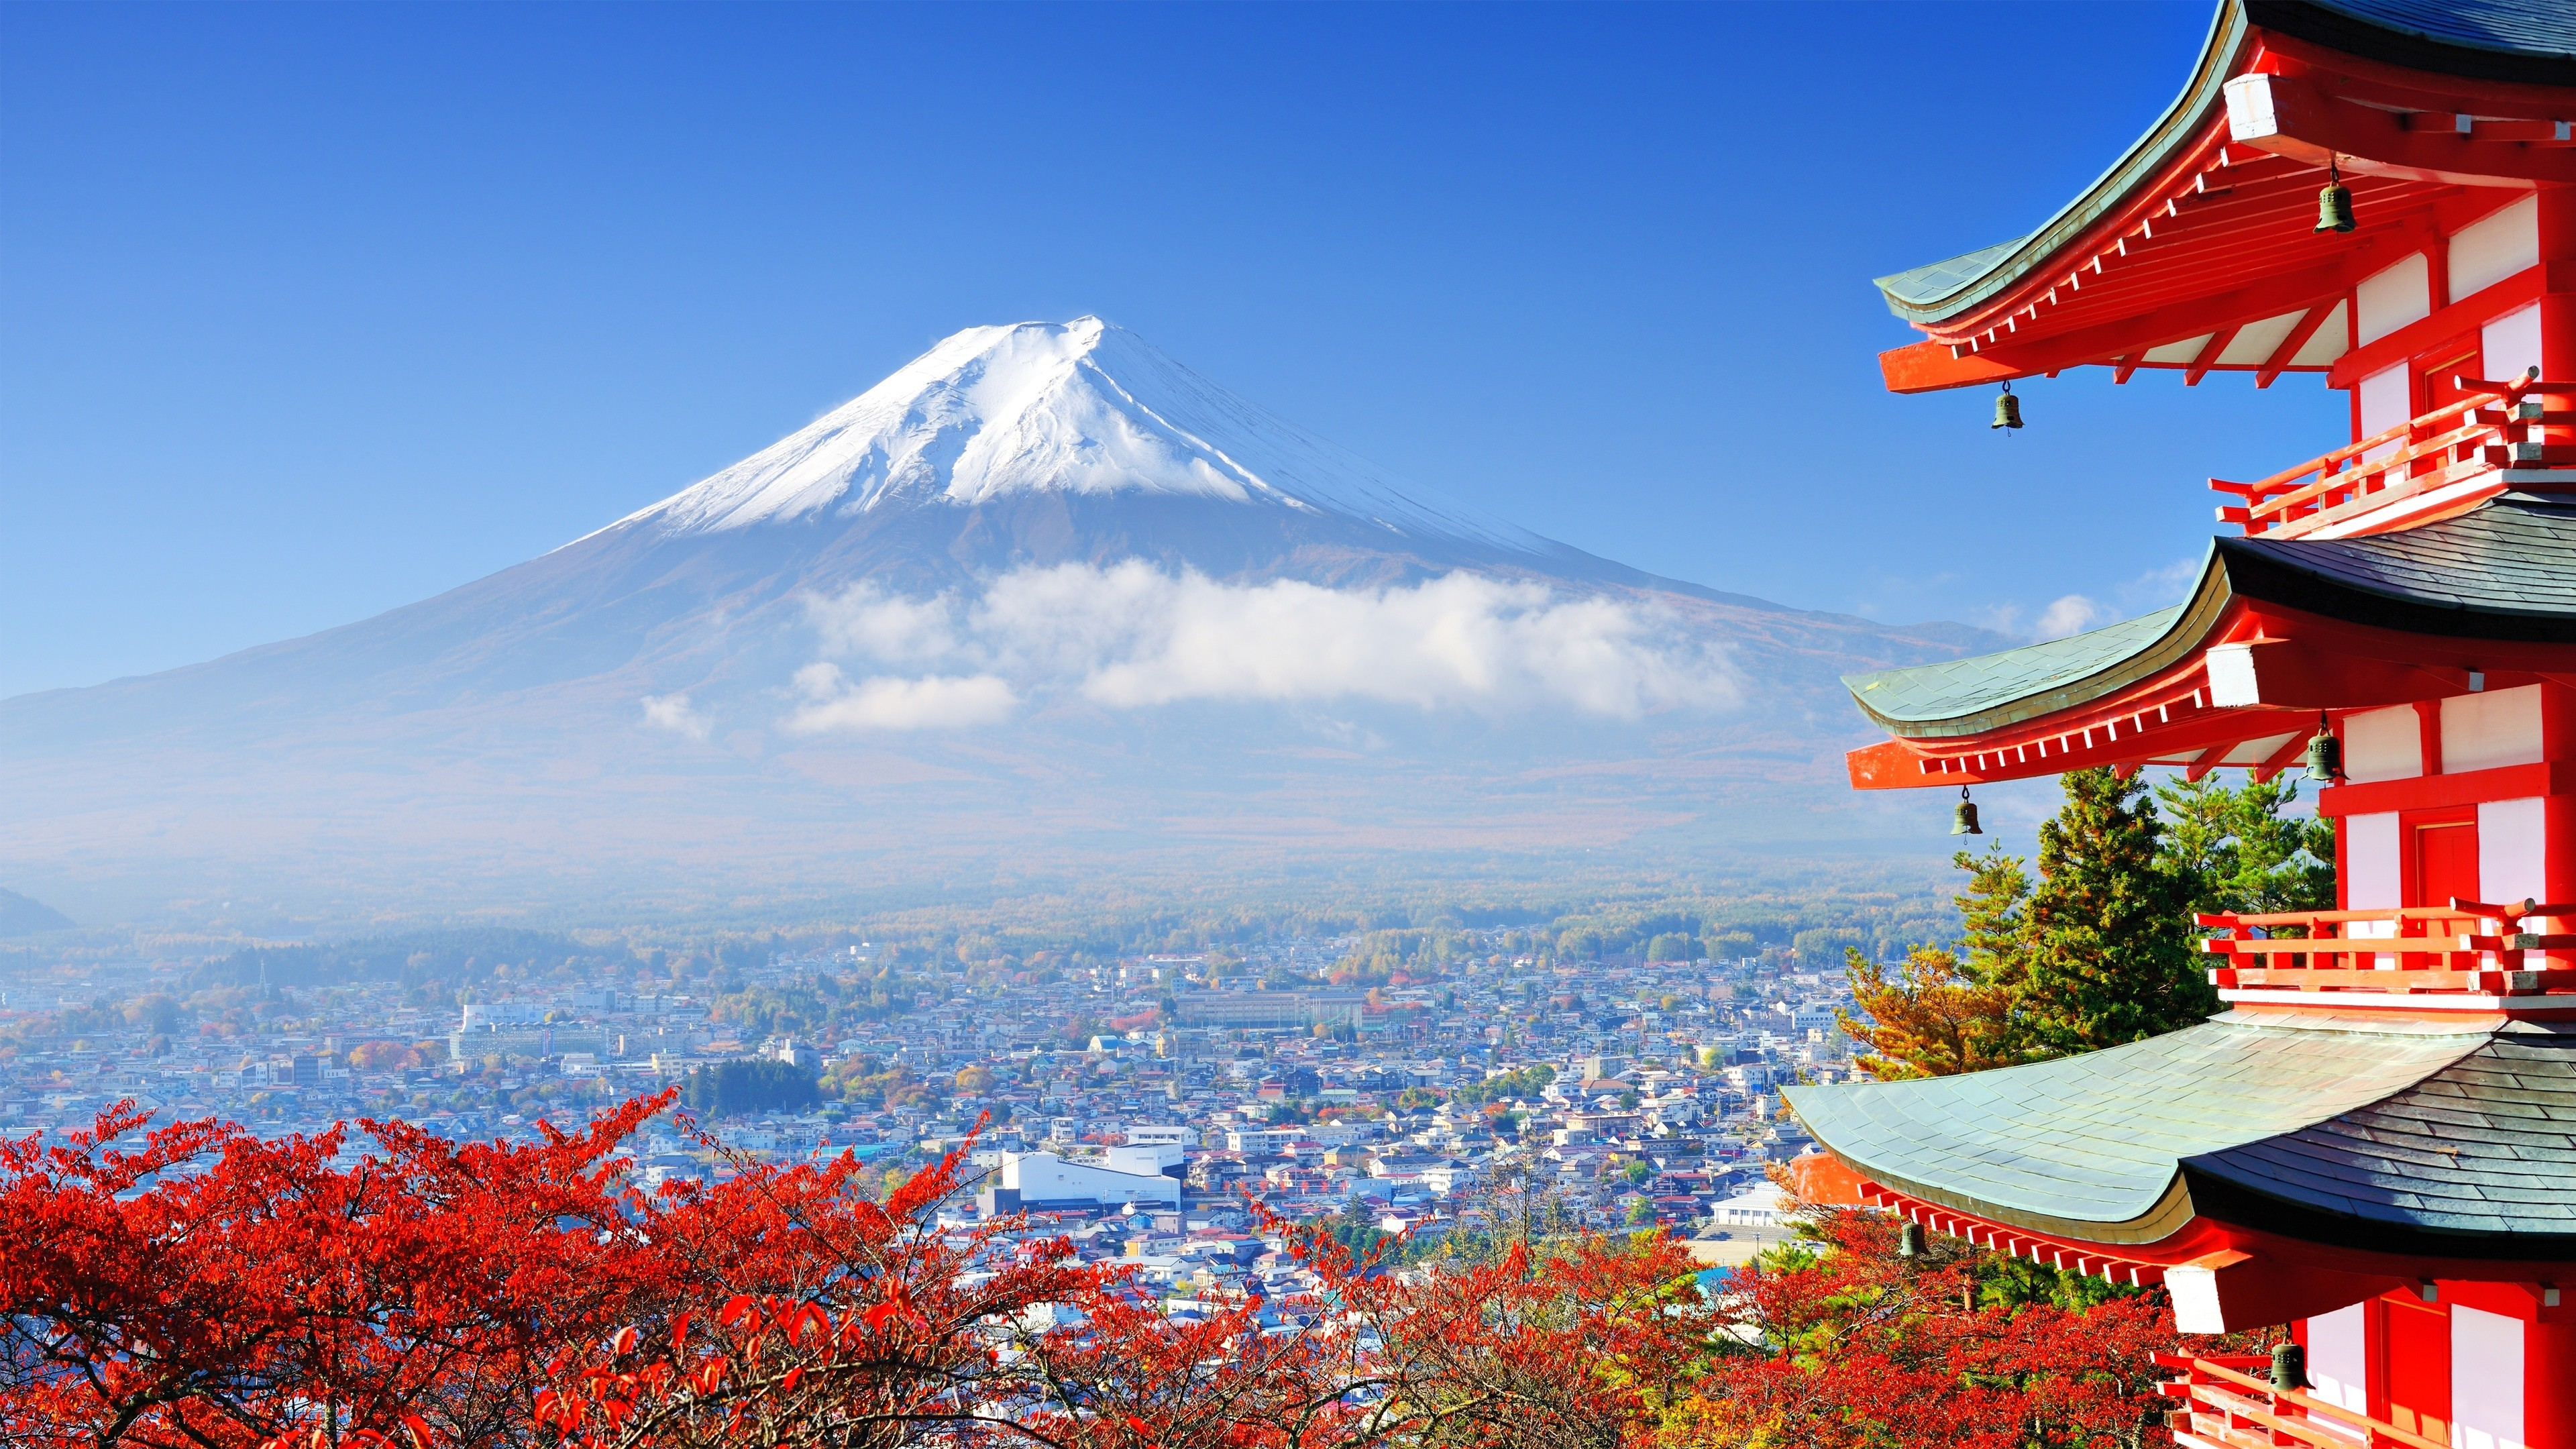 Most Inspiring Wallpaper Mountain National Geographic - fuji-3840x2160-4k-hd-wallpaper-japan-travel-tourism-national-10326  Perfect Image Reference_43727.jpg